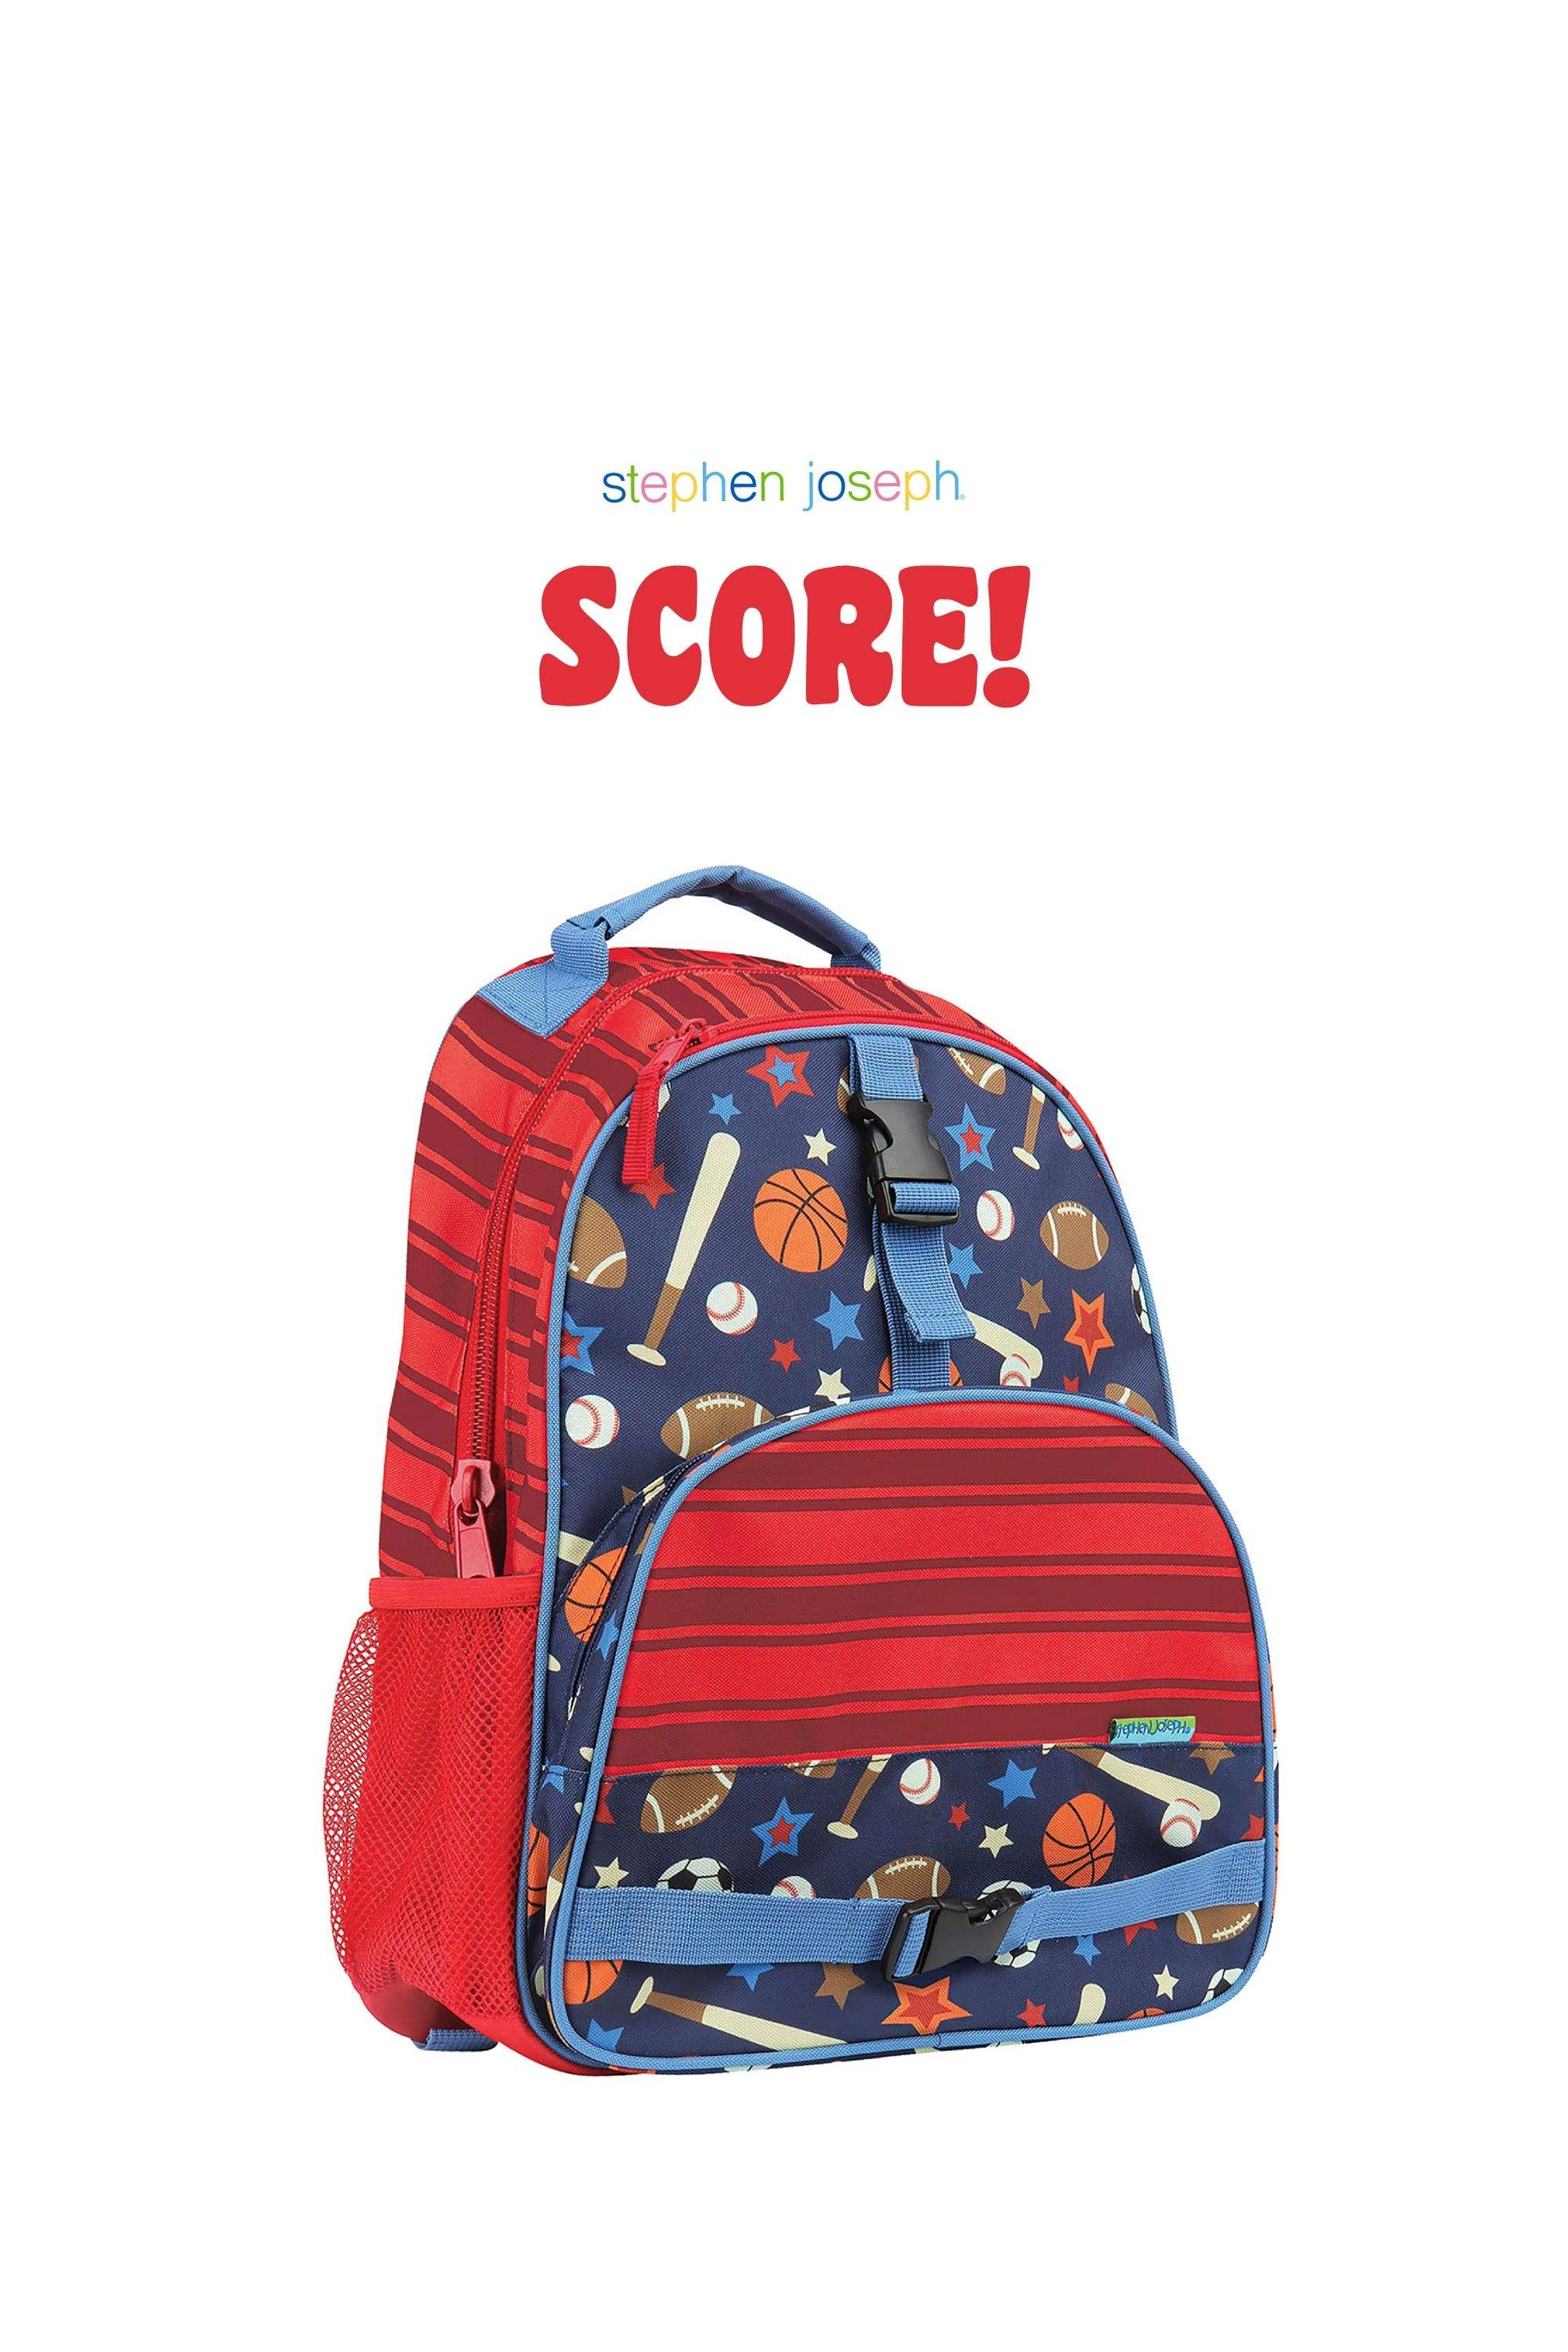 $29.90 All Over Print Backpack in Sports